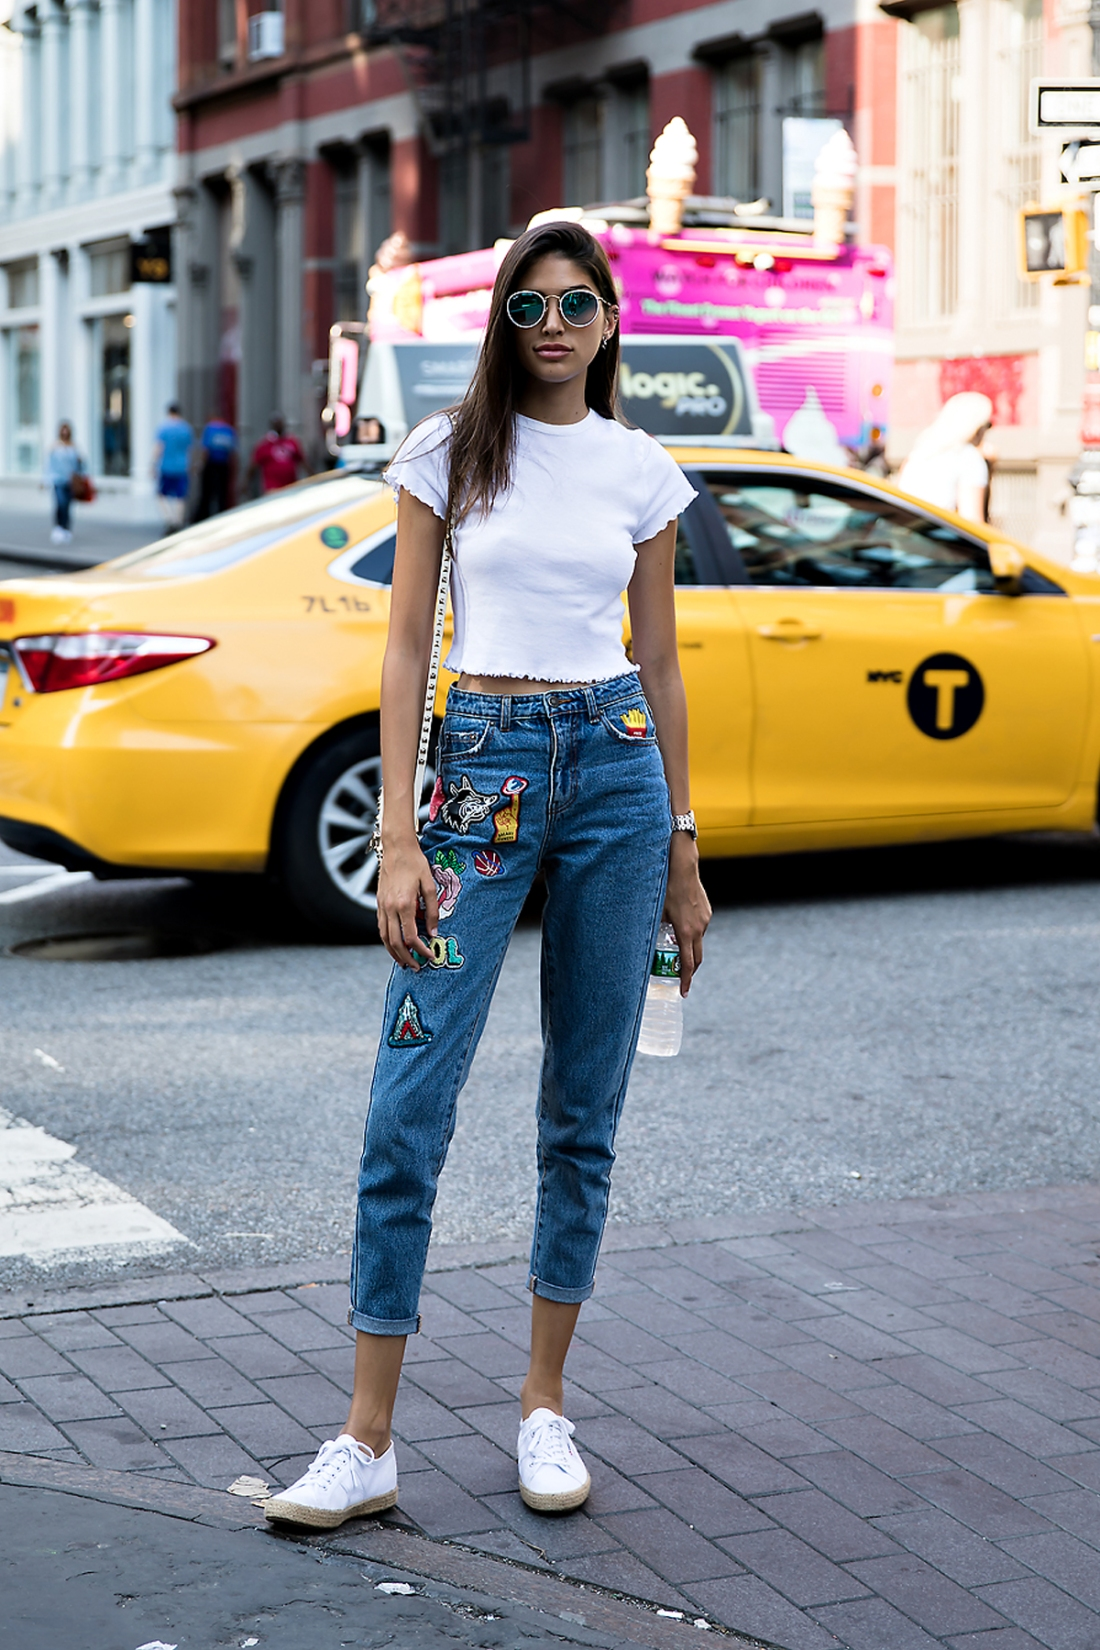 Laraghraoui larakusez, Street Fashion 2017 in New York.jpg